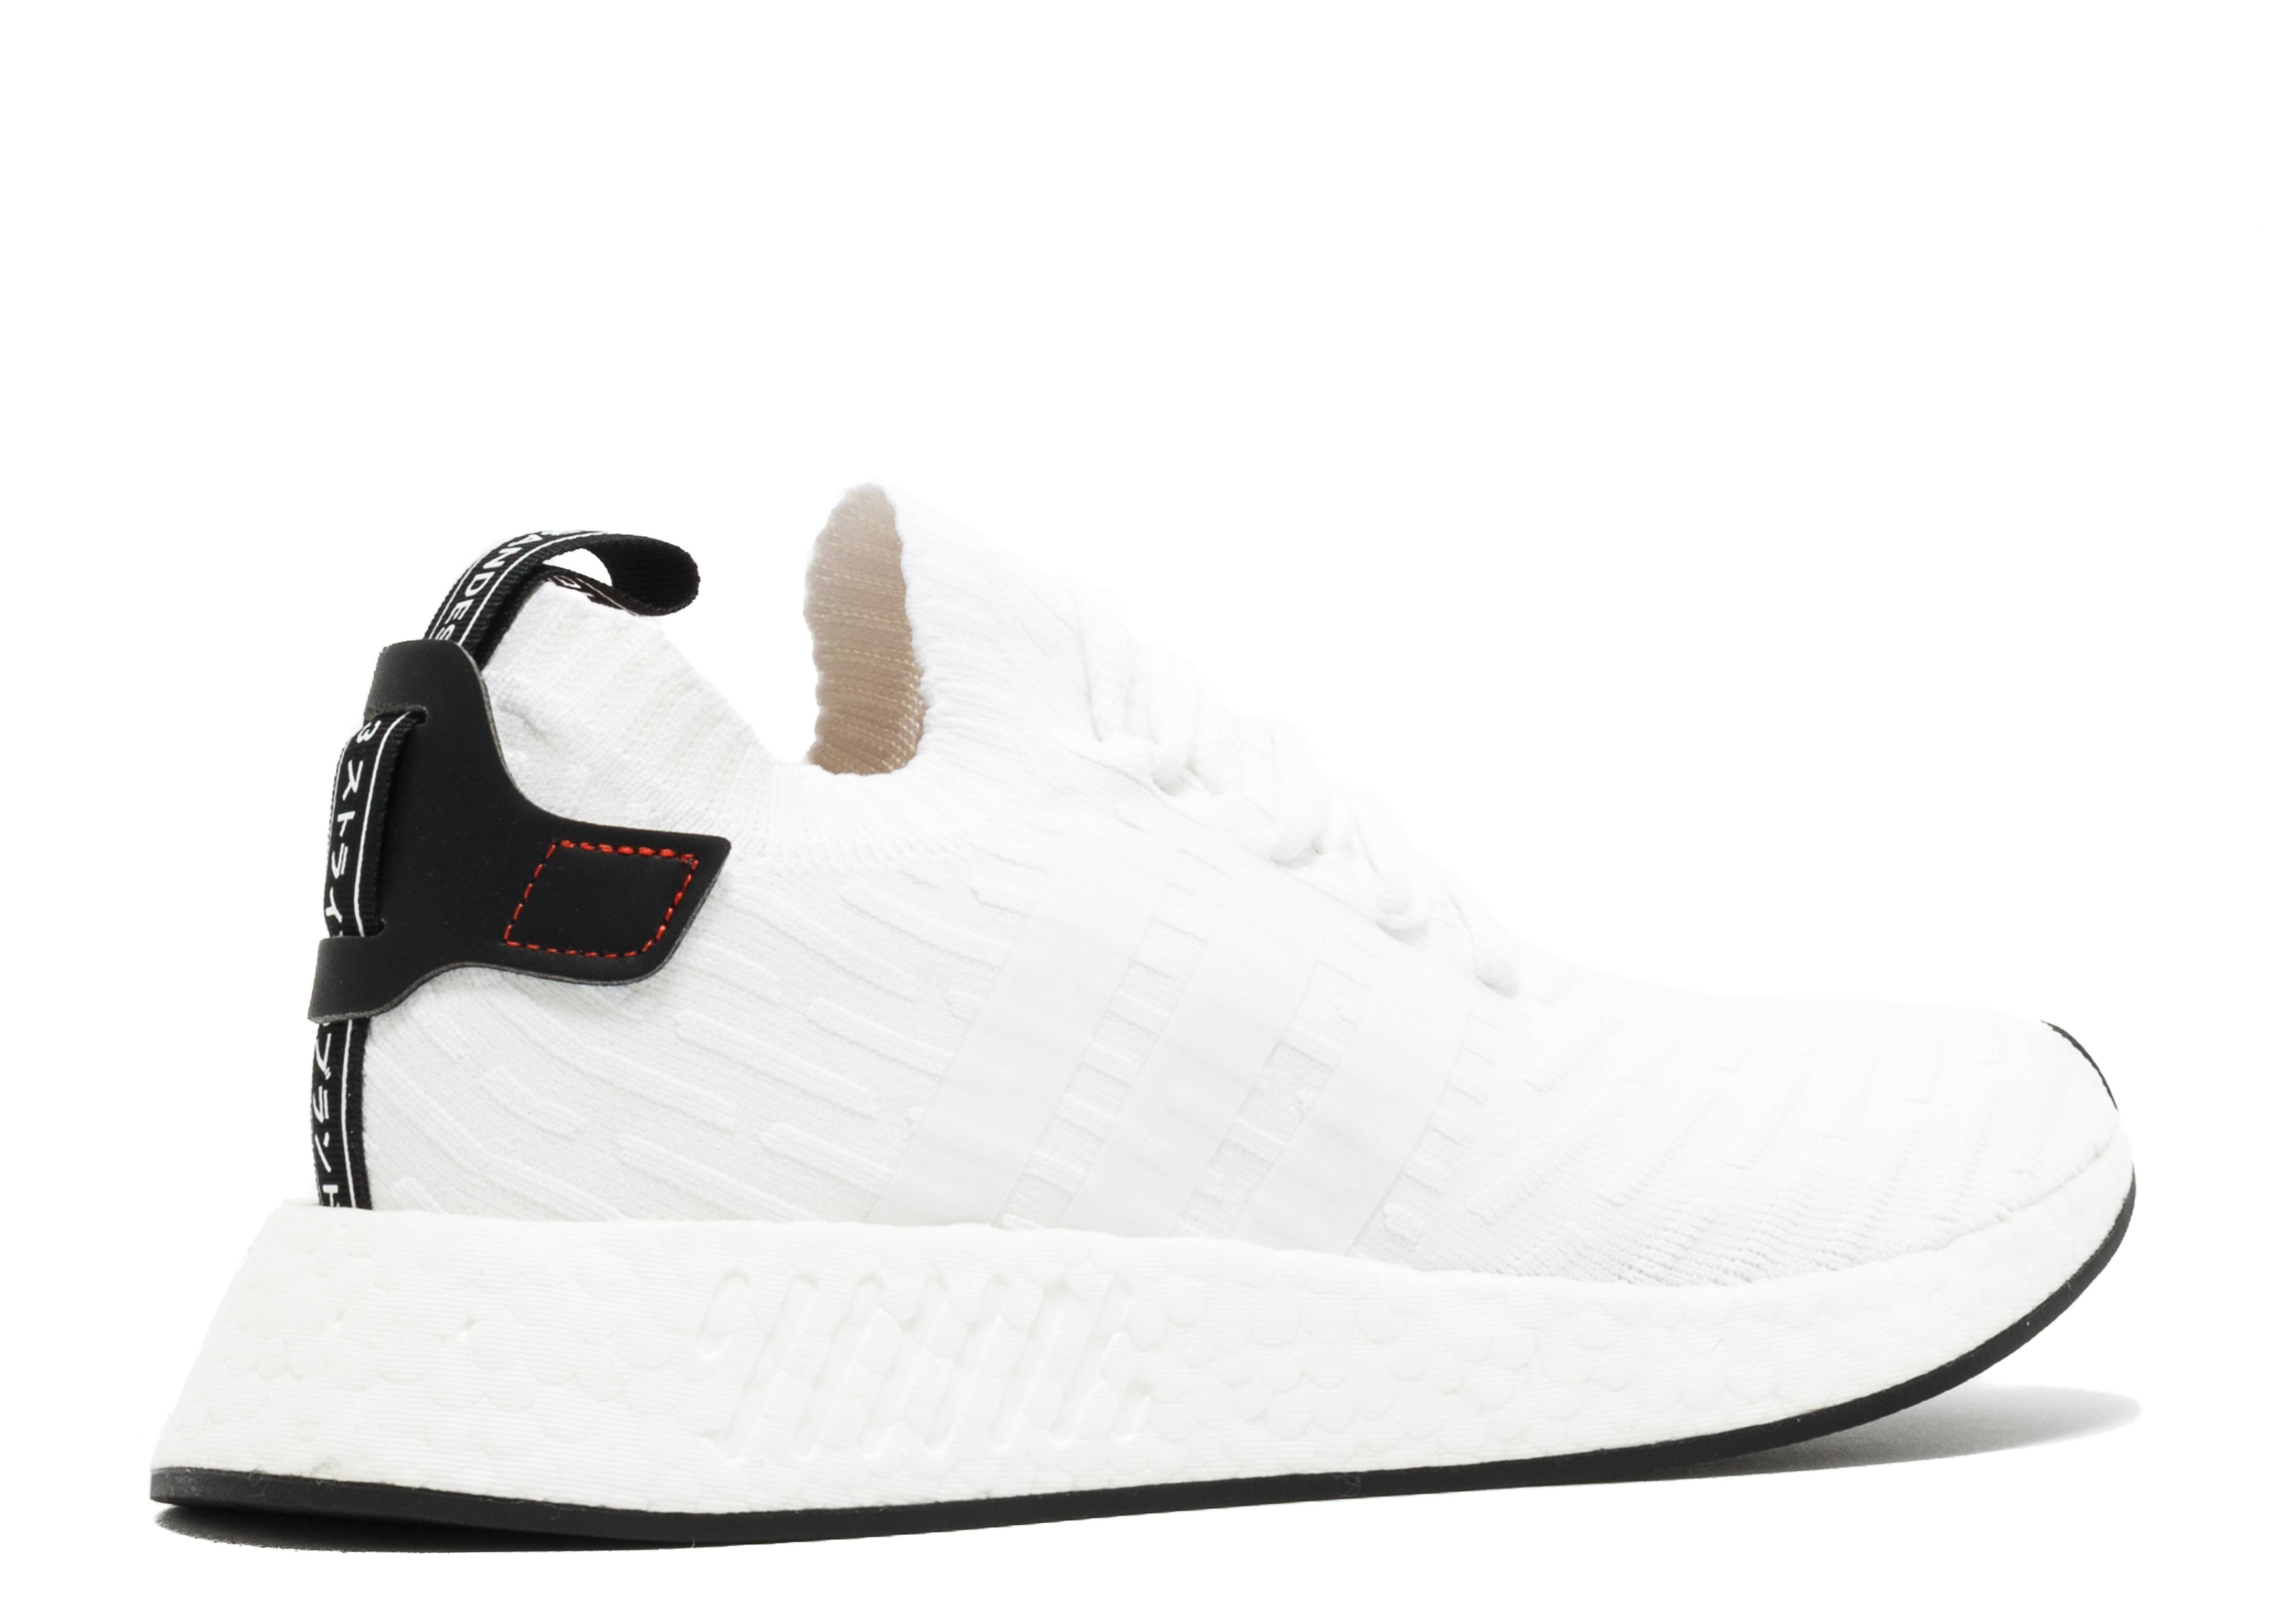 51f70c2f1 NMD R2 PK - Adidas - BY3015 - white core black-red